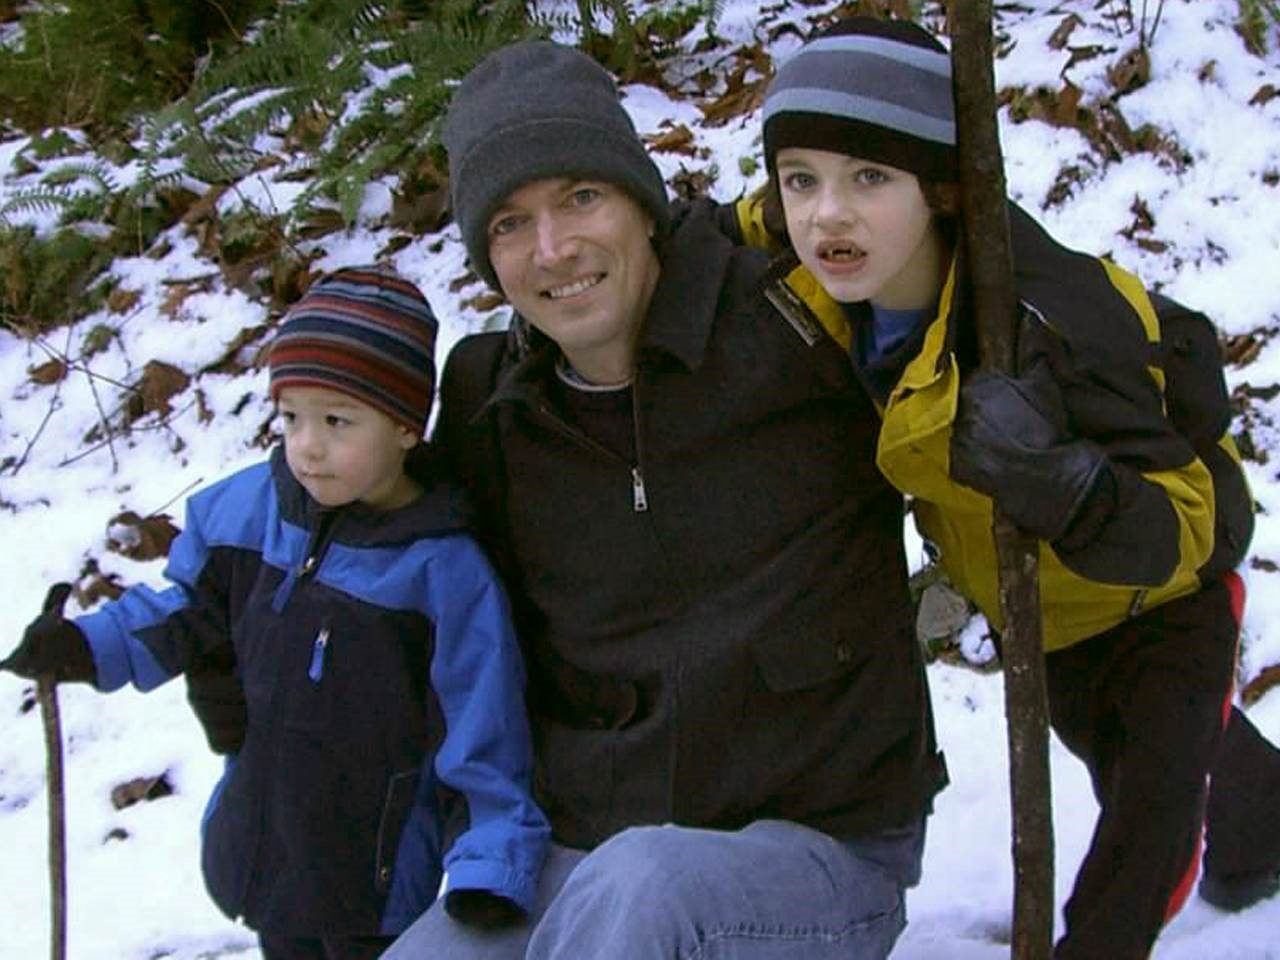 Ethan Remmel with his sons in the snow.